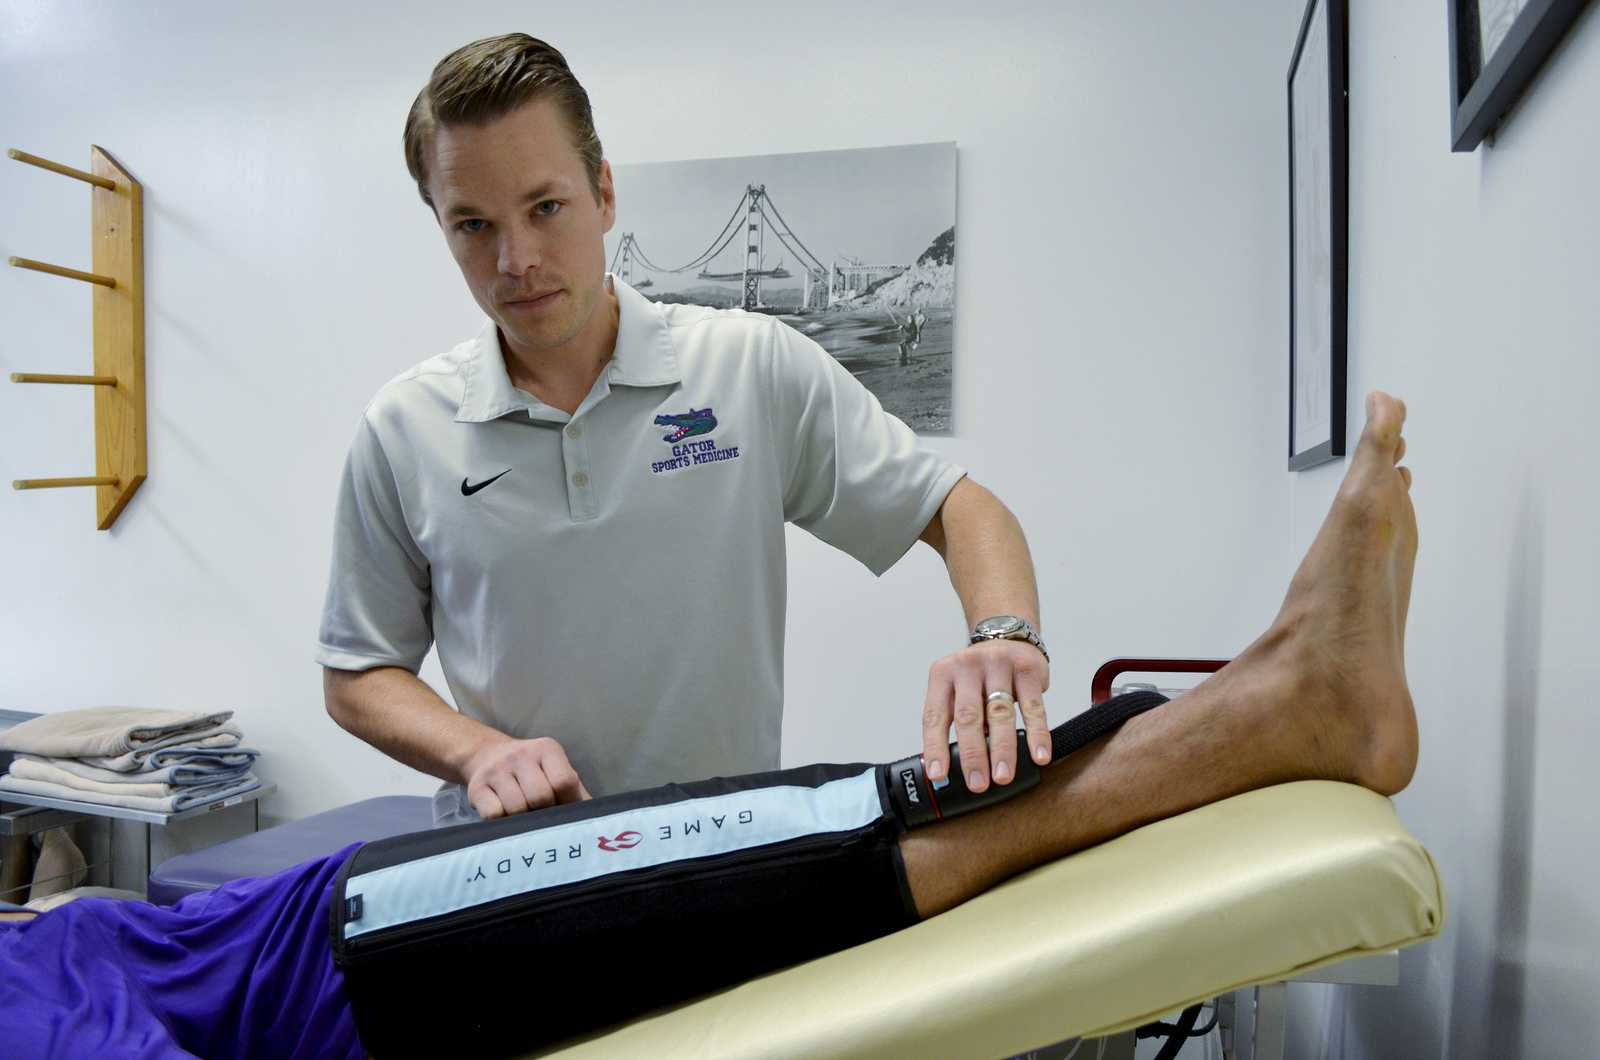 Bryce Schussel, the head athletic trainer at SF State since June 2009, works with SF State men's basketball player Eric Fearn in the training room in the Gymnasium building Friday, Nov. 15, 2013. Photo by Amanda Peterson / Xpress